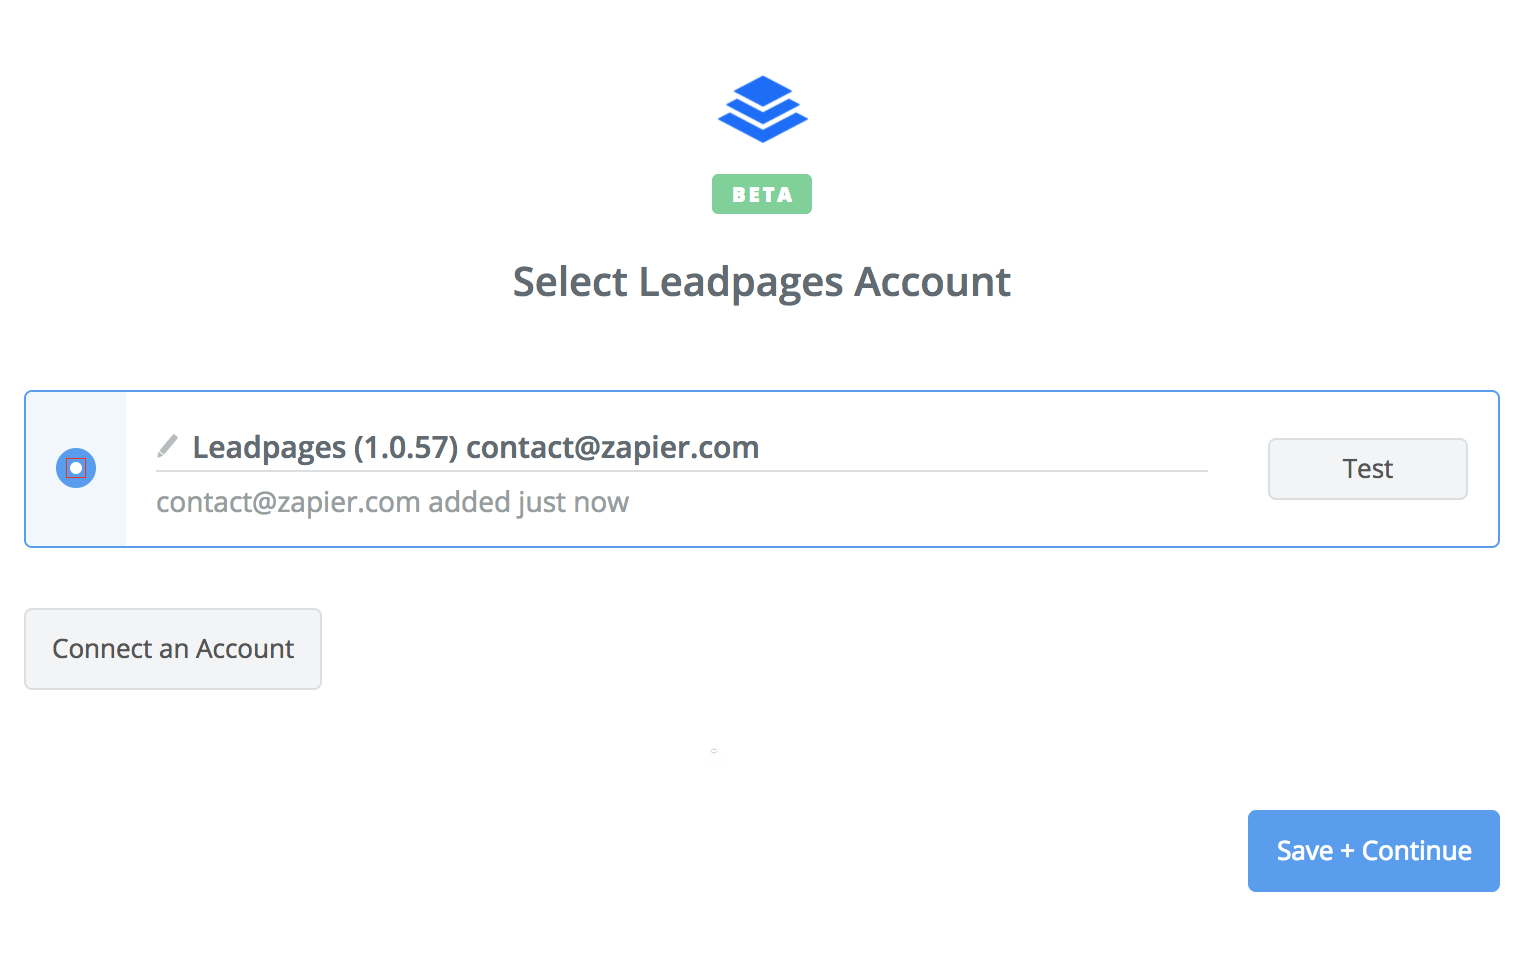 Leadpages connection successfull